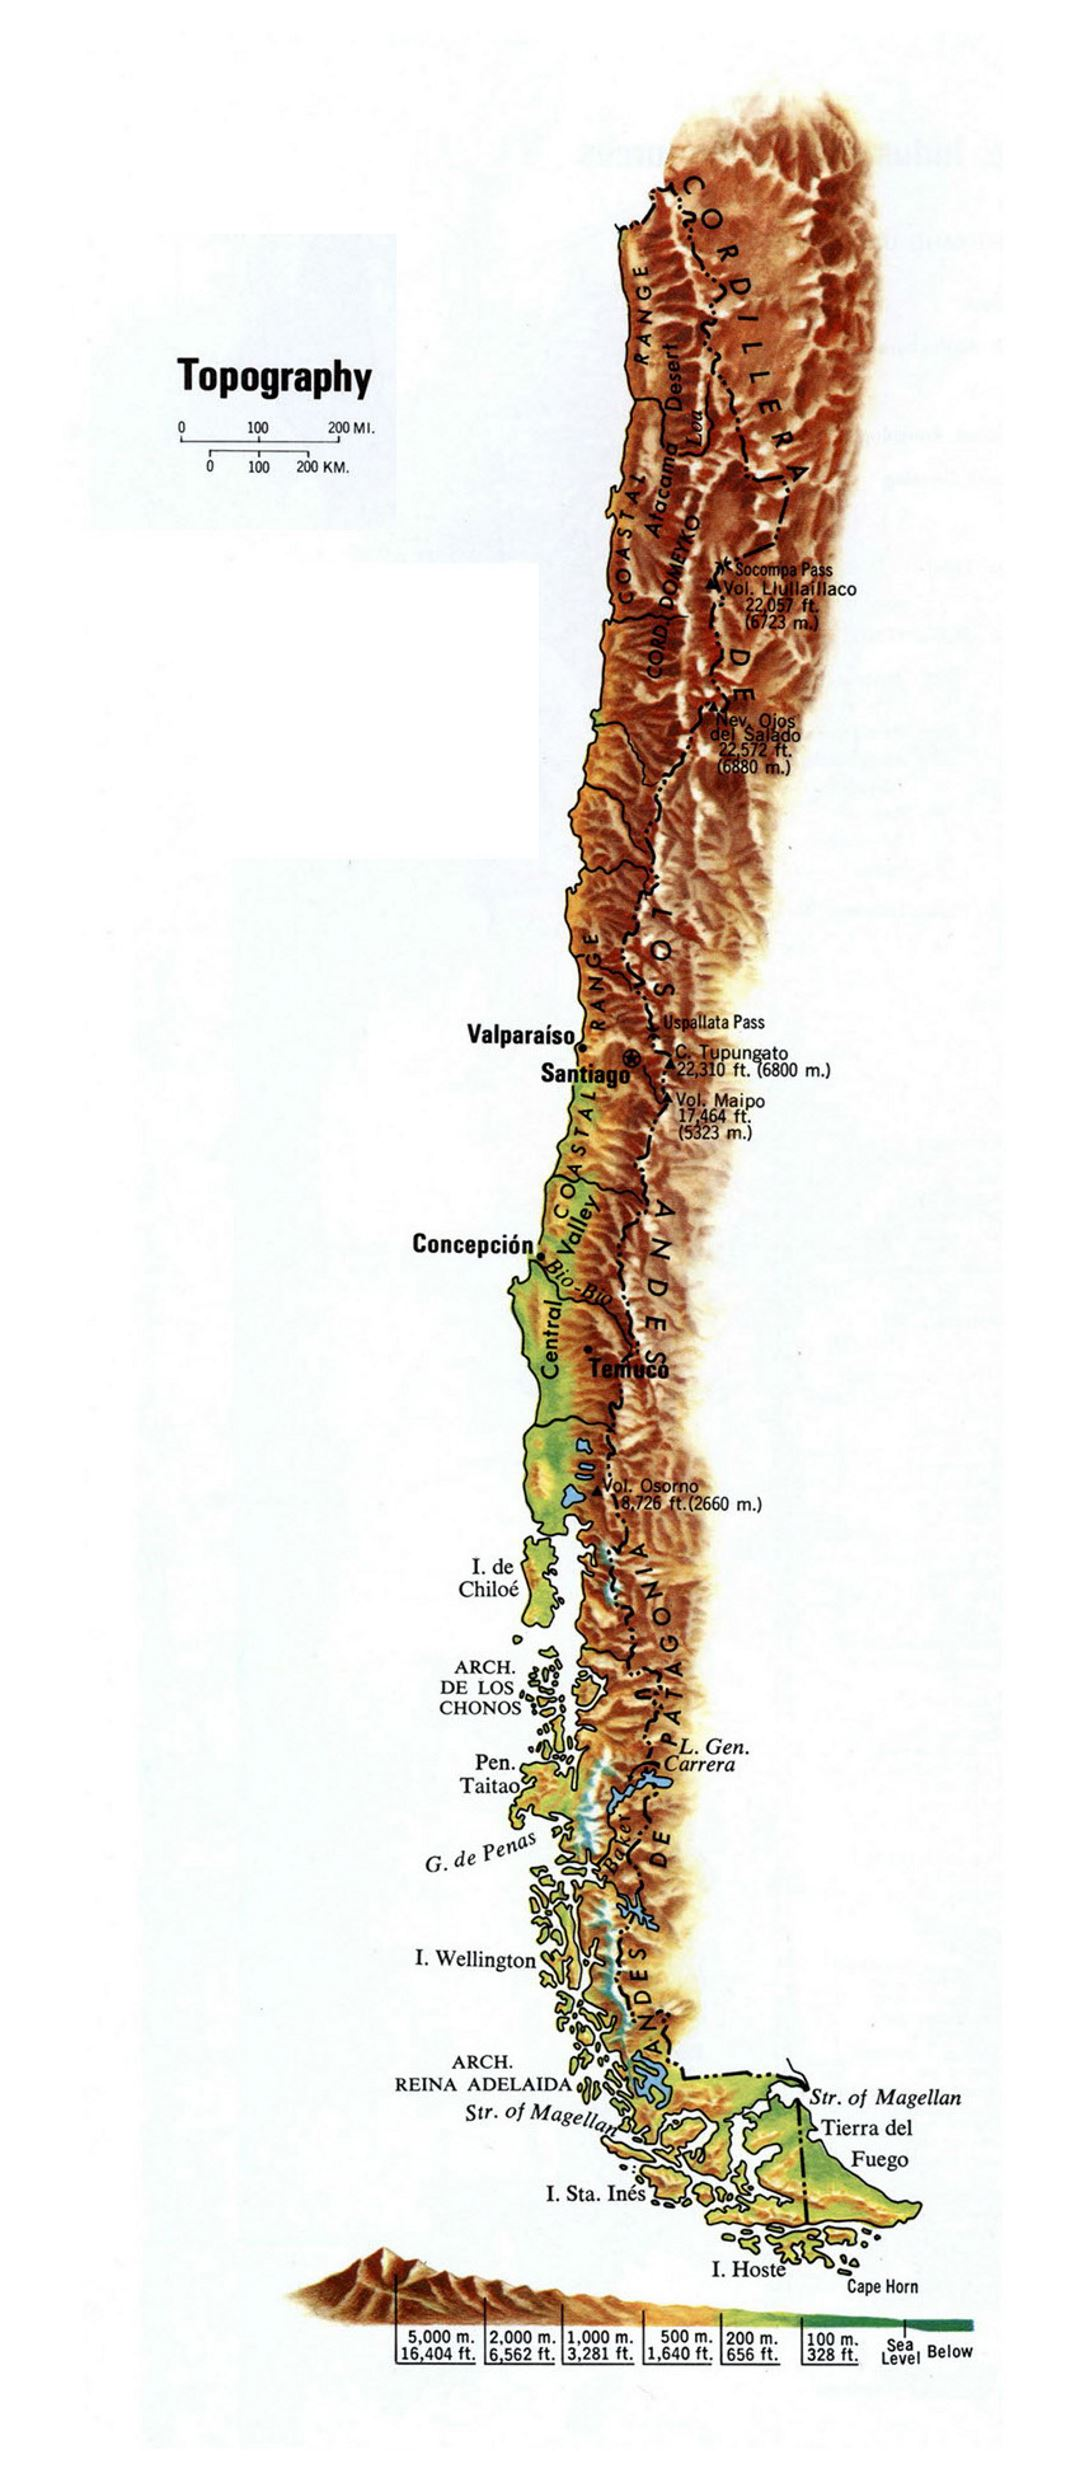 Large topography map of Chile